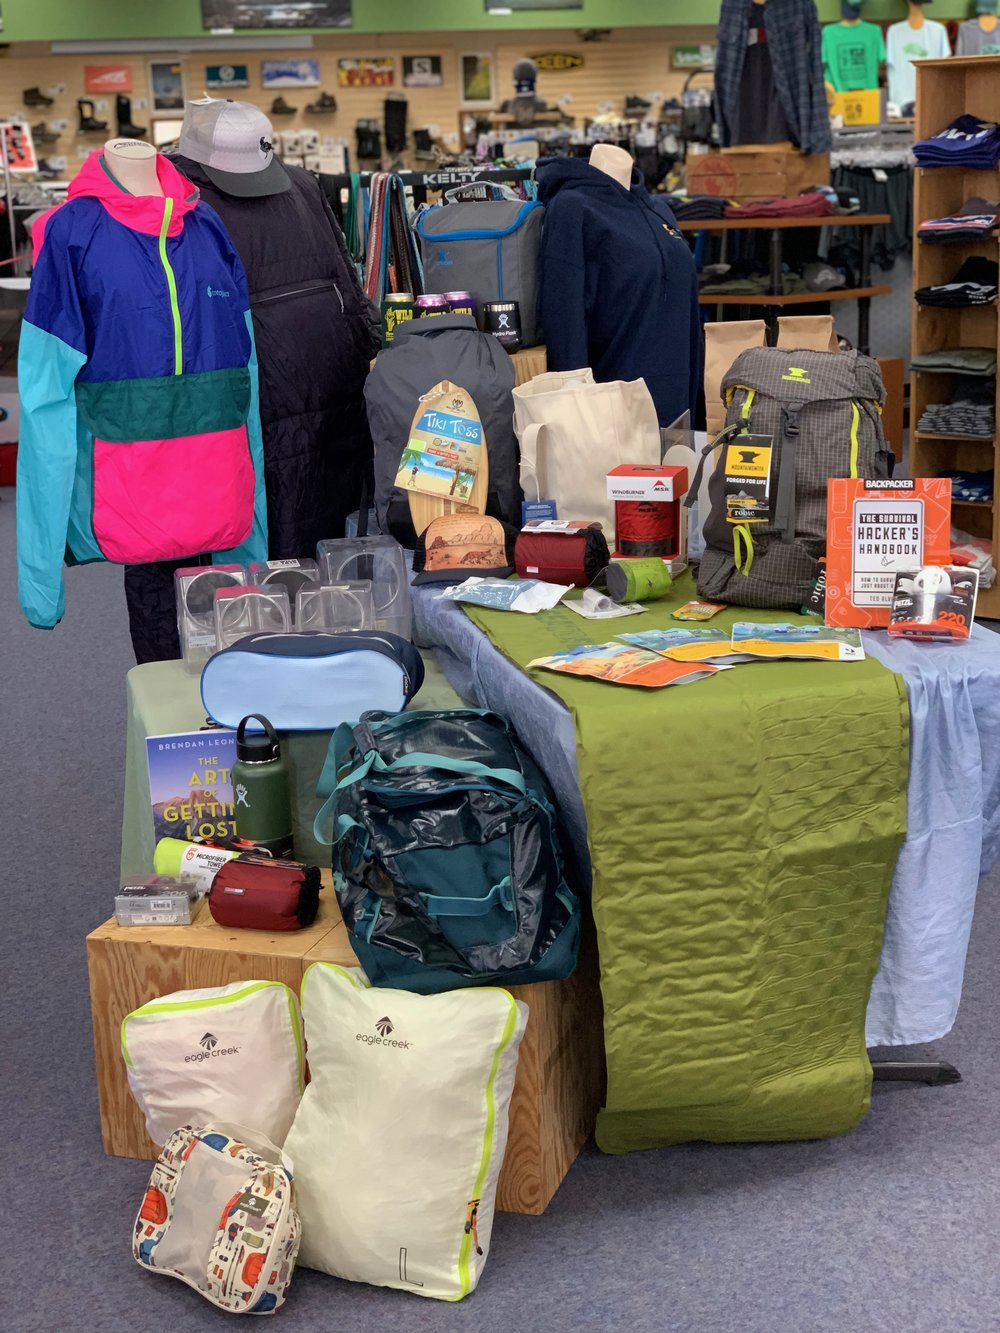 Spring Fling Prizes - For a chance to win, buy raffle tickets here online, or in person at Wild Iris Mountain Sports. You do not need to be present to win, but you would miss out on the fun and games happening during Spring Fling on April 5th.